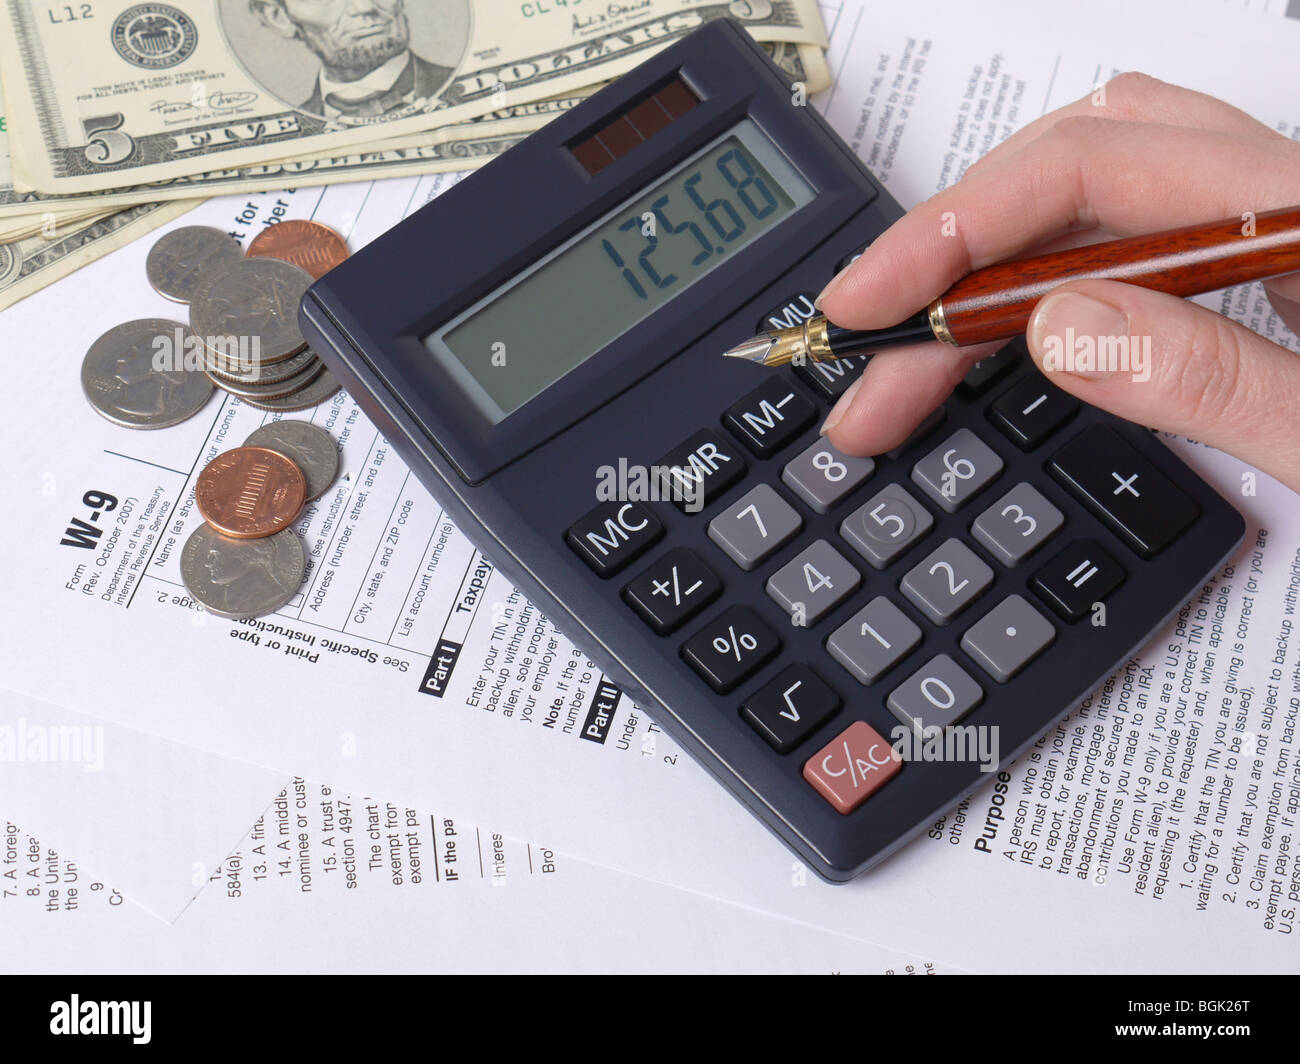 Female hand calculating taxes on calculator with W-9 income tax forms underneath - Stock Image